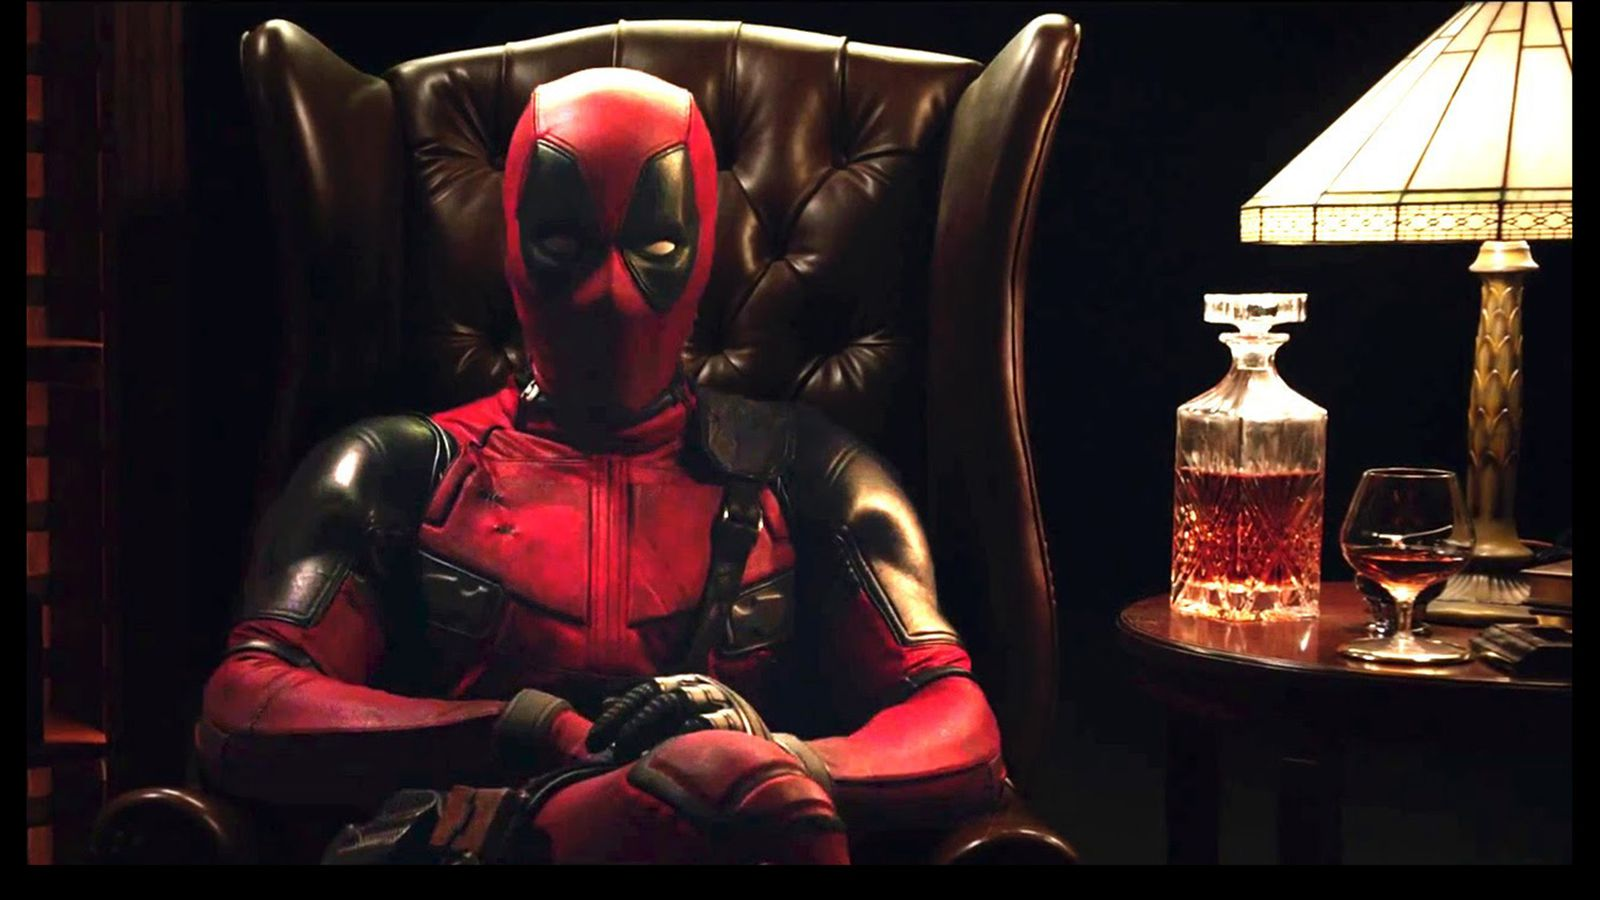 deadpool director was willing to go pg13 to get movie